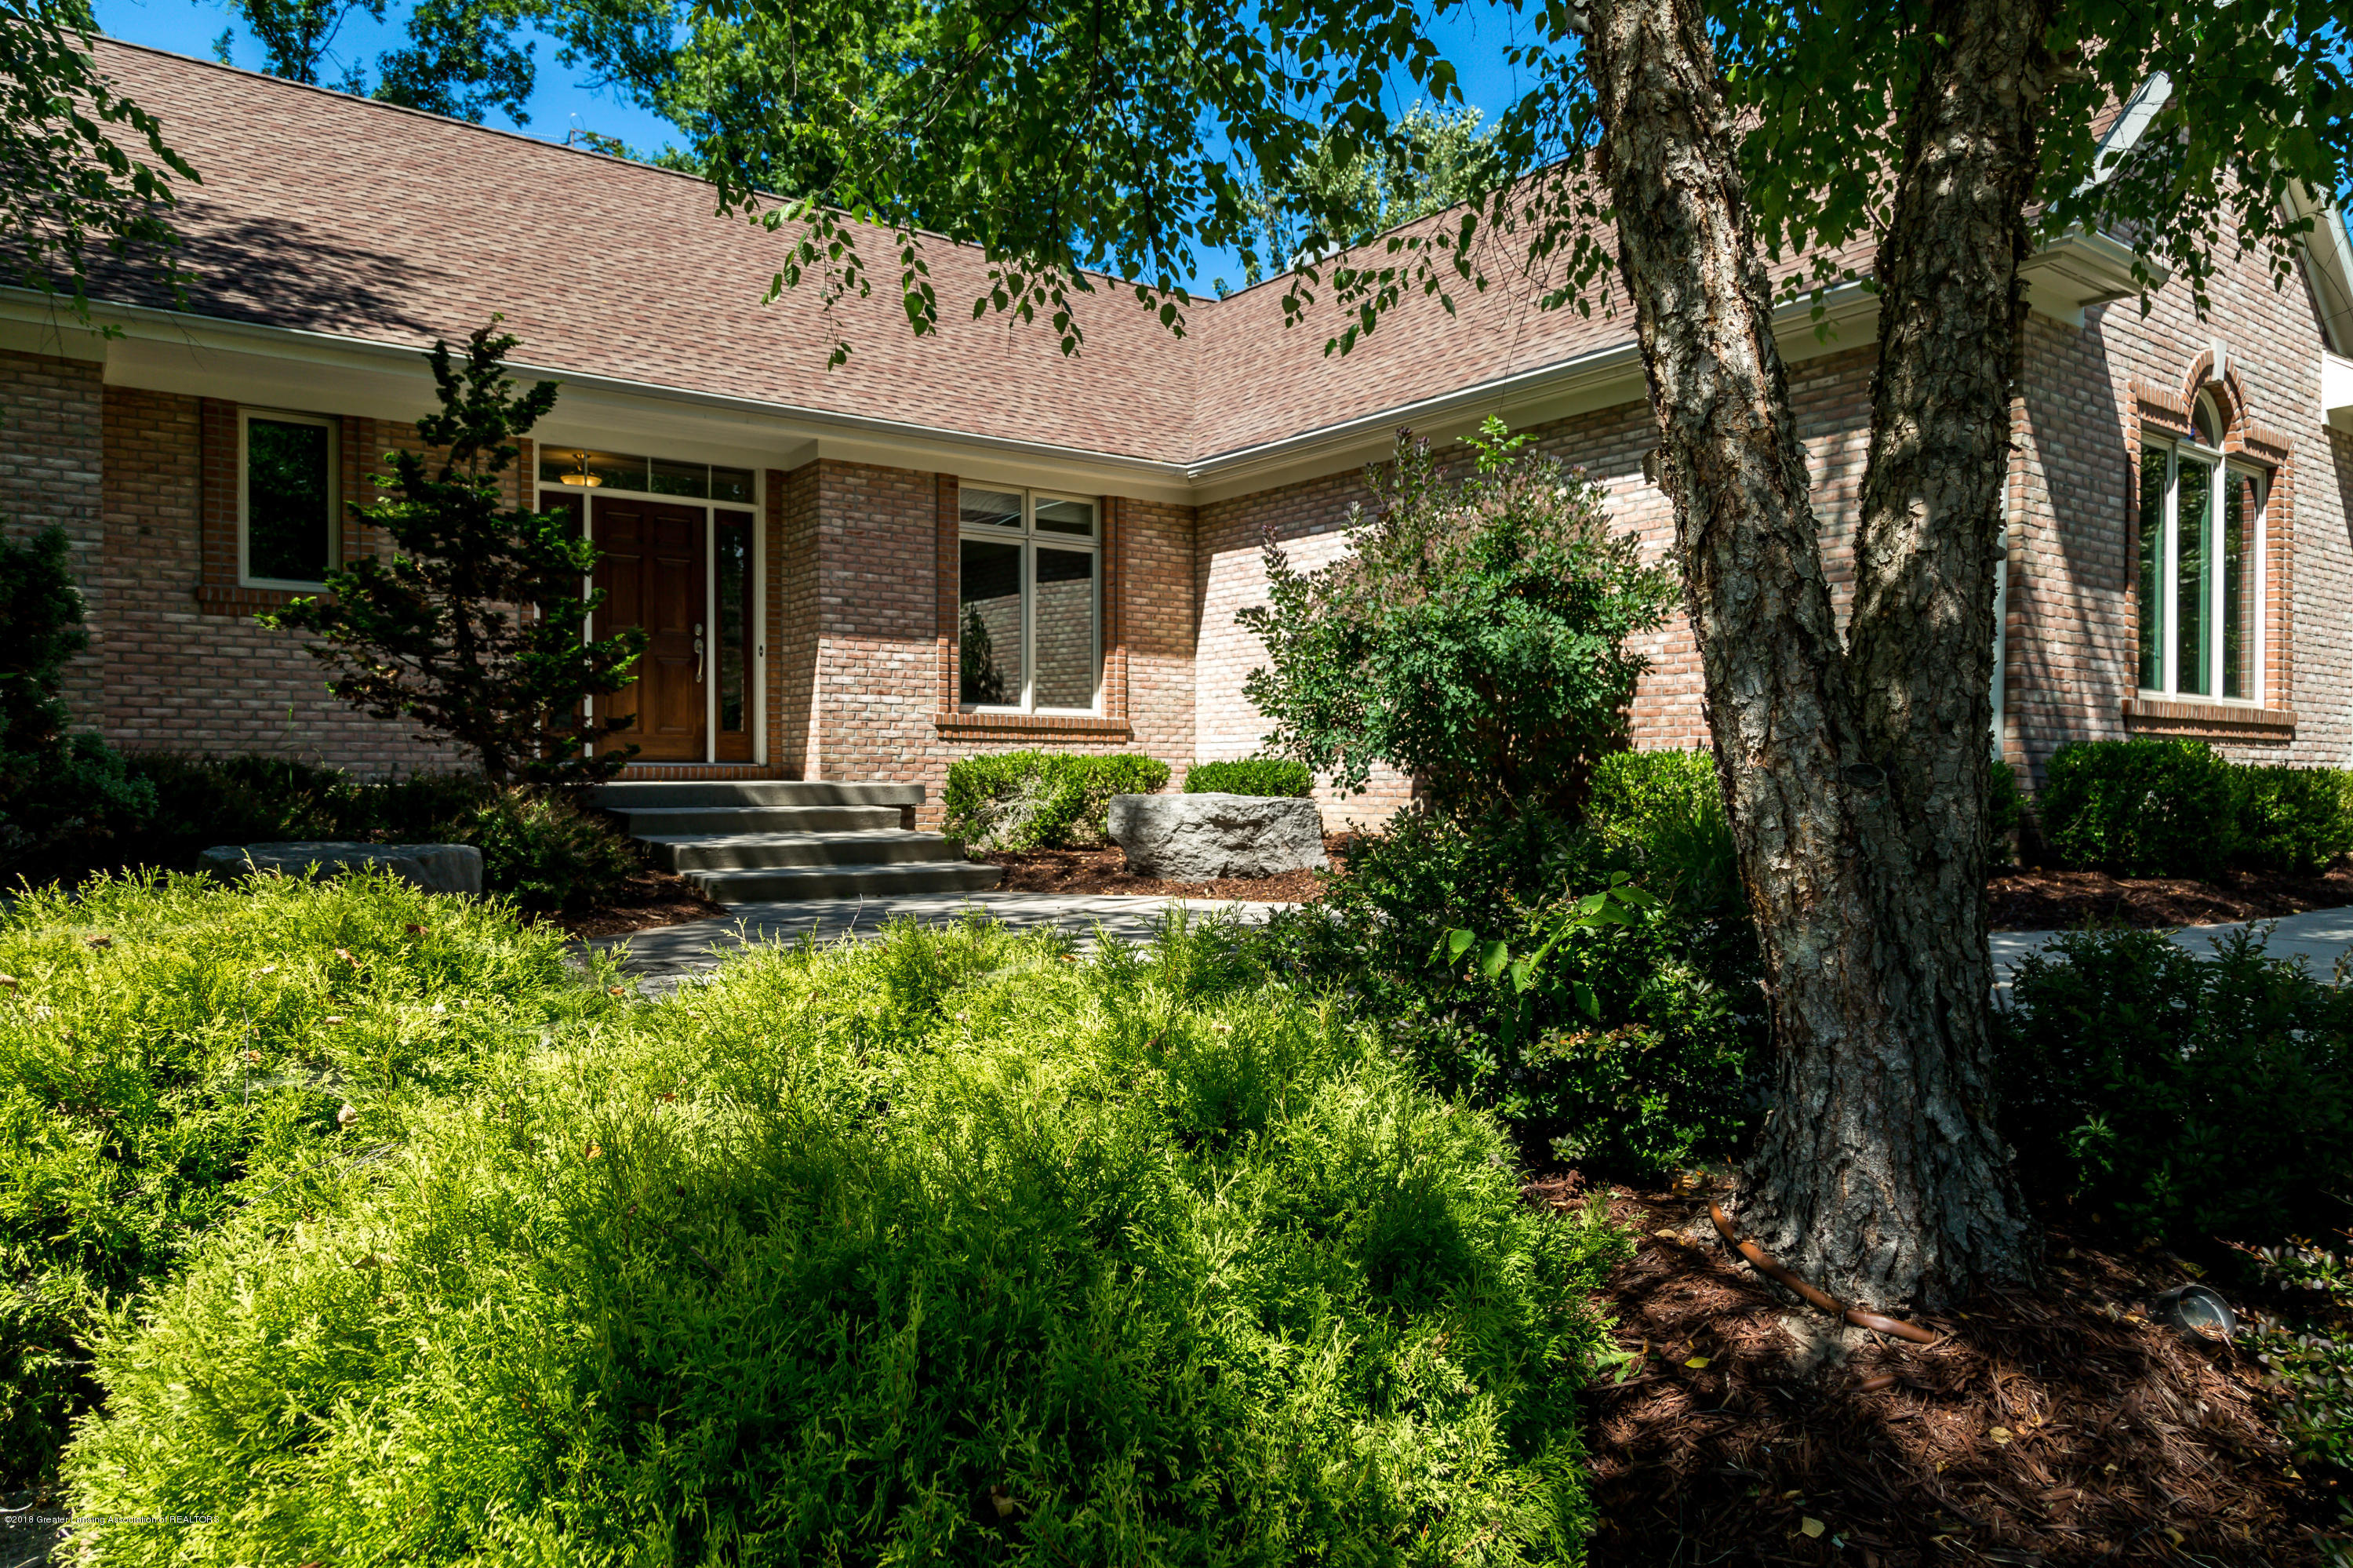 2016 Belwood Dr - 20180710-942A3187 - 7